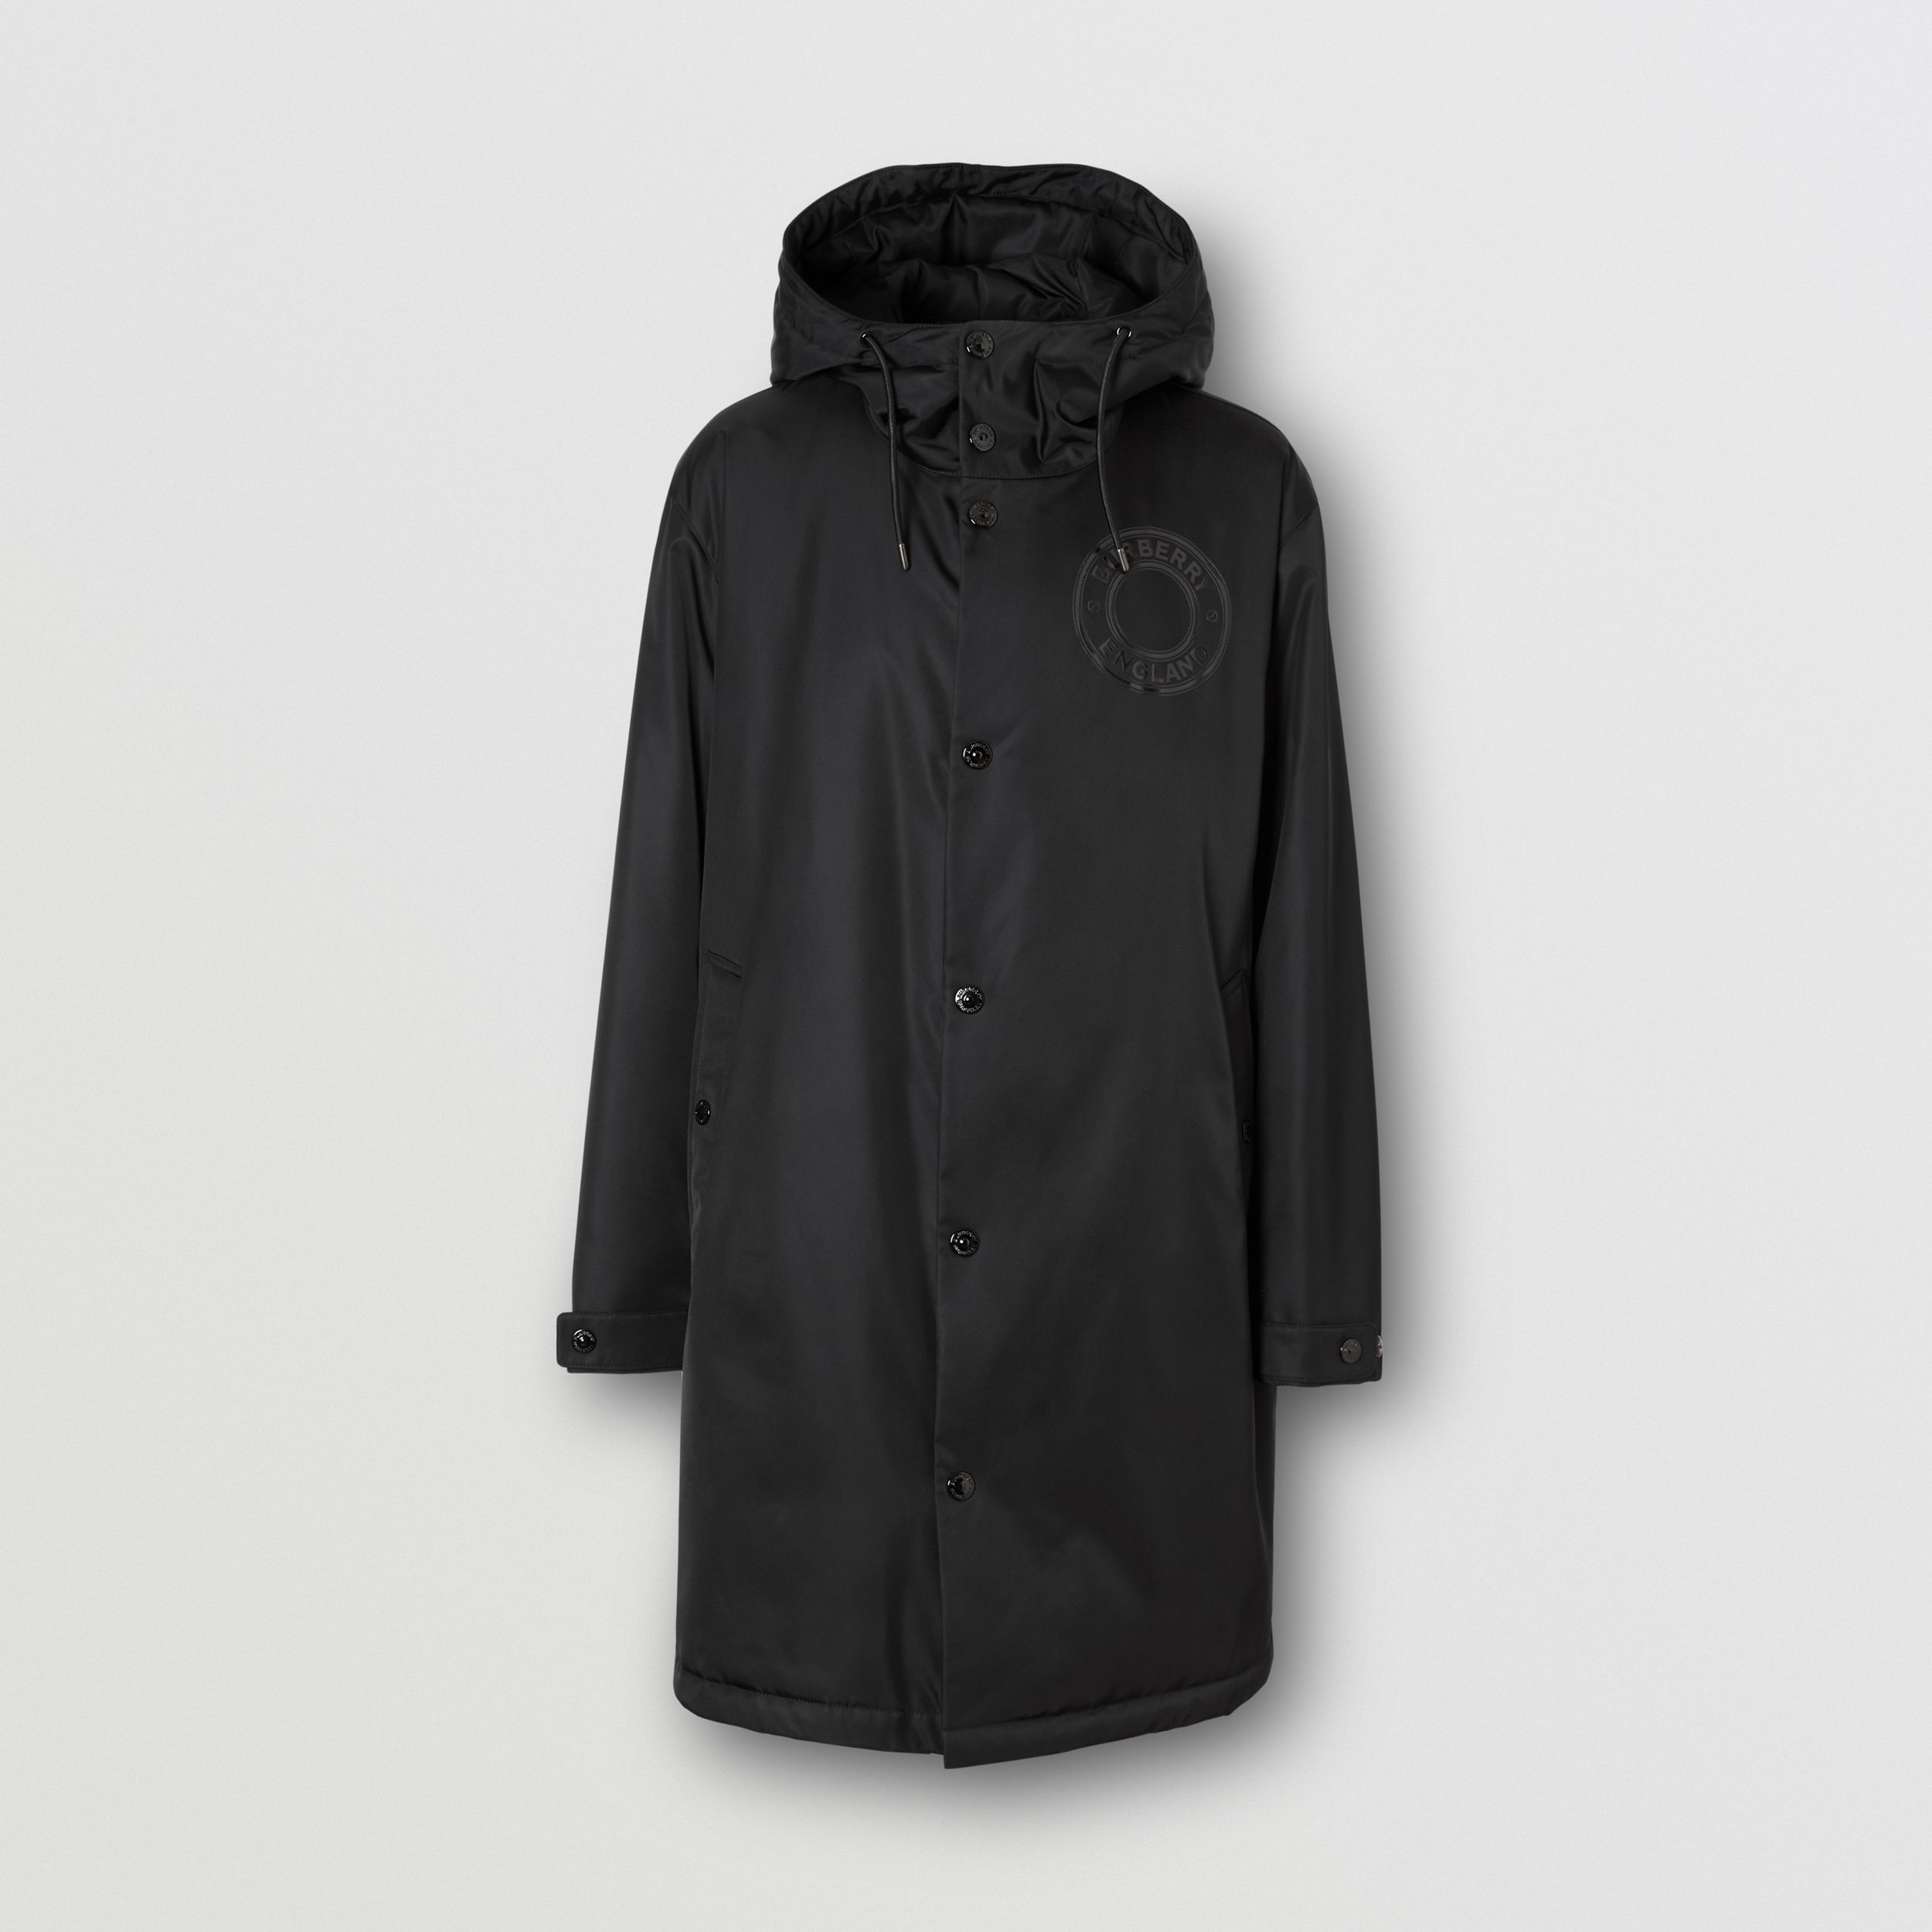 Logo Graphic Technical Twill Parka in Black - Men | Burberry - 4